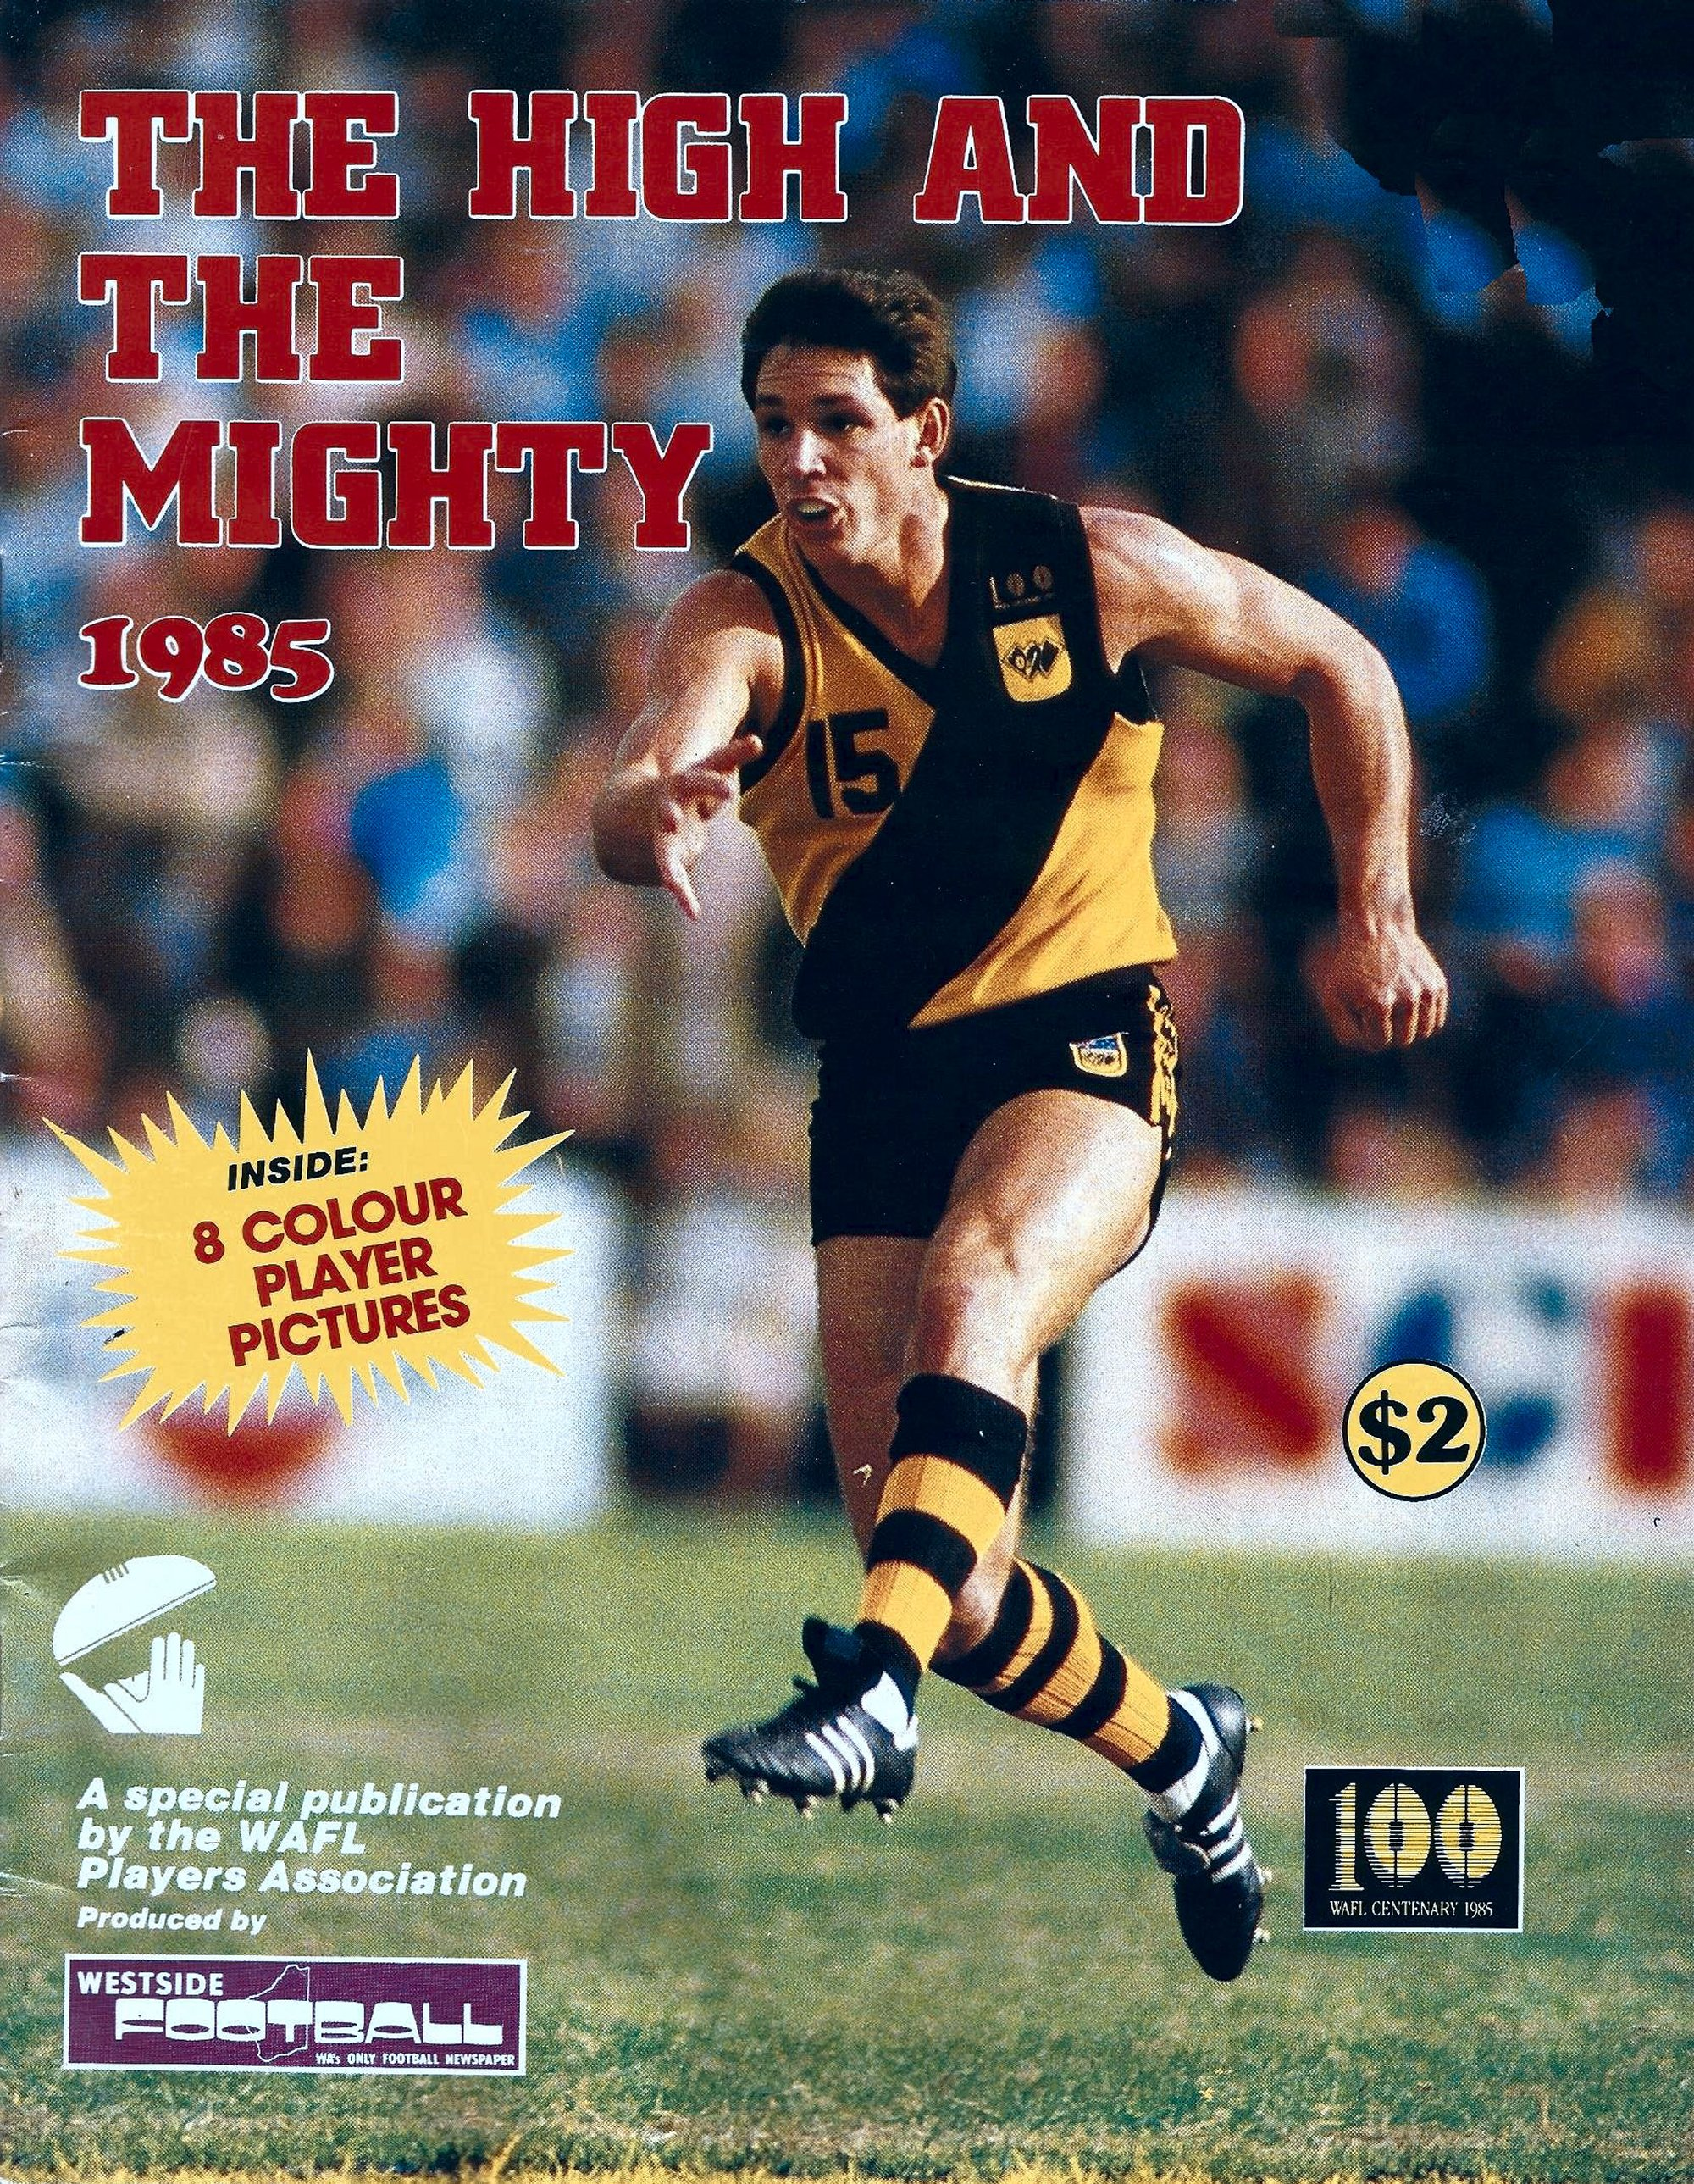 Cover 1985 High and Mighty